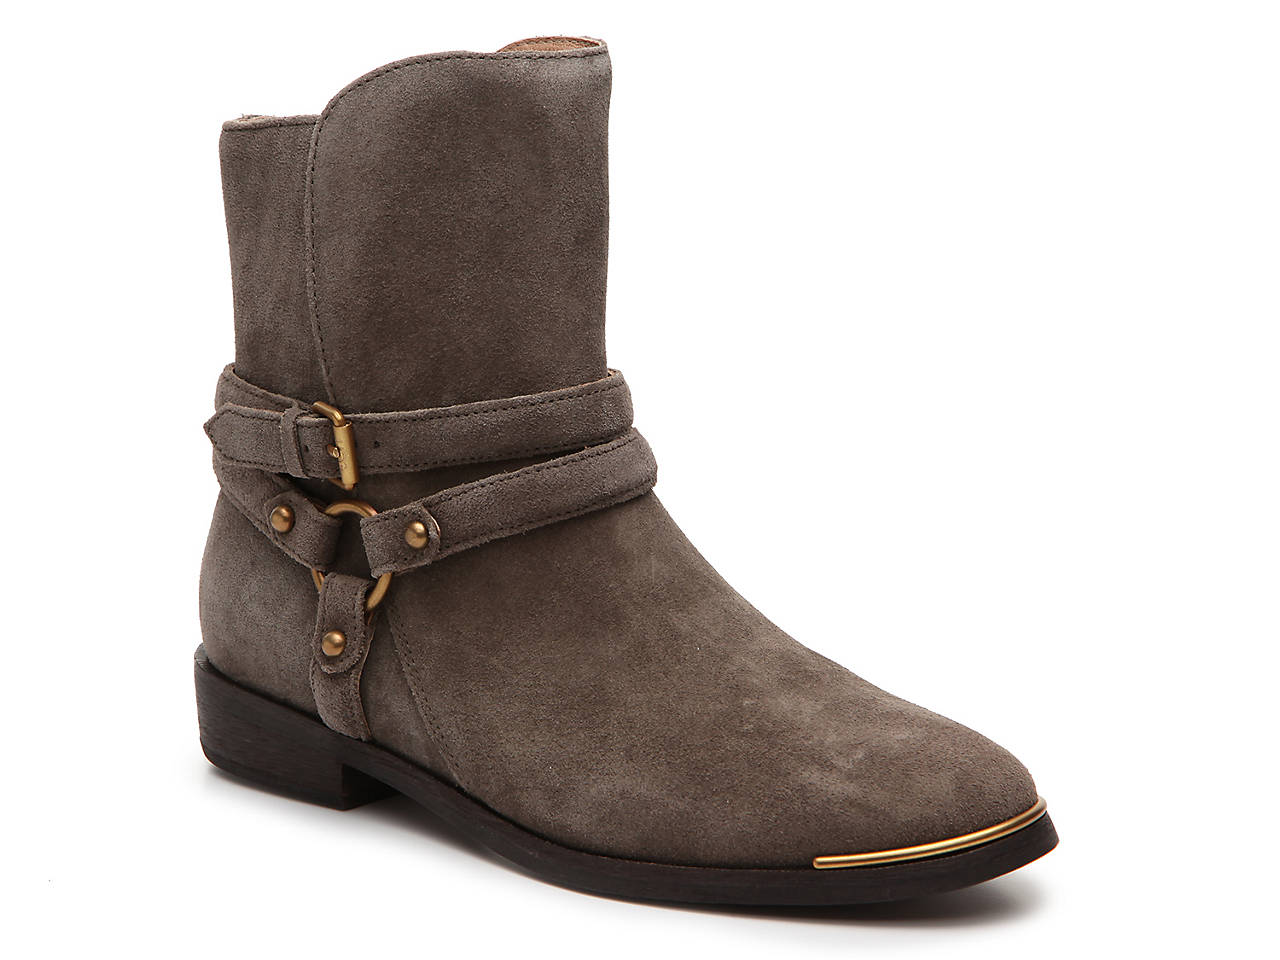 534e7f85fa8a UGG Kelby Motocycle Bootie Women s Shoes